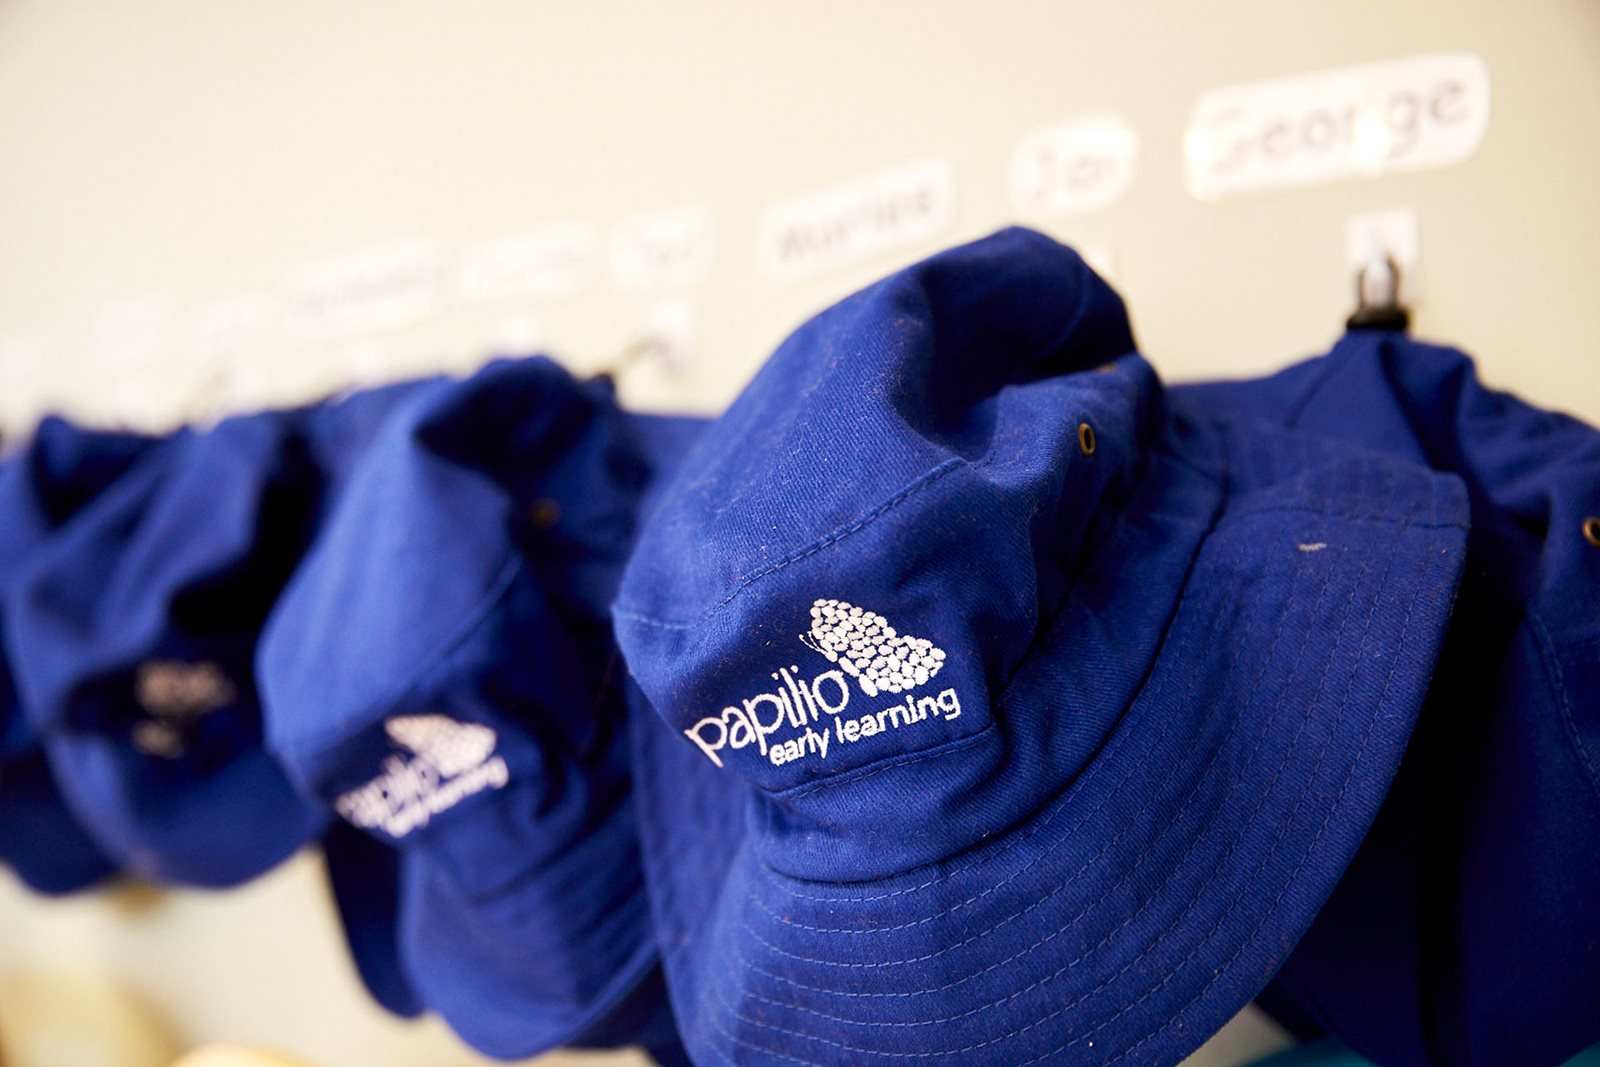 Papilio Early Learning branded hats in childcare centre